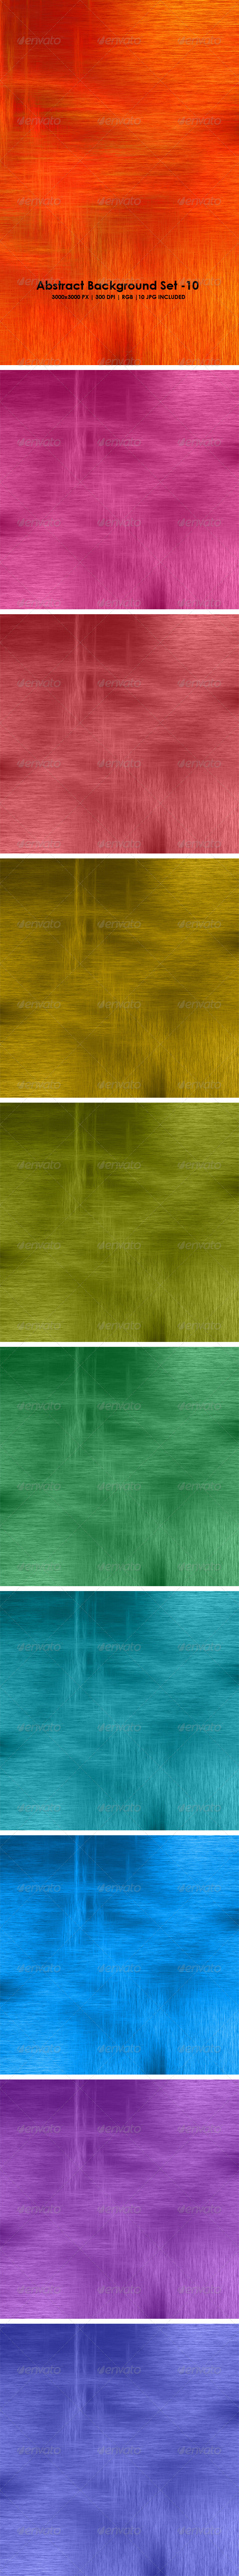 Abstract Background Set 10 - Abstract Backgrounds